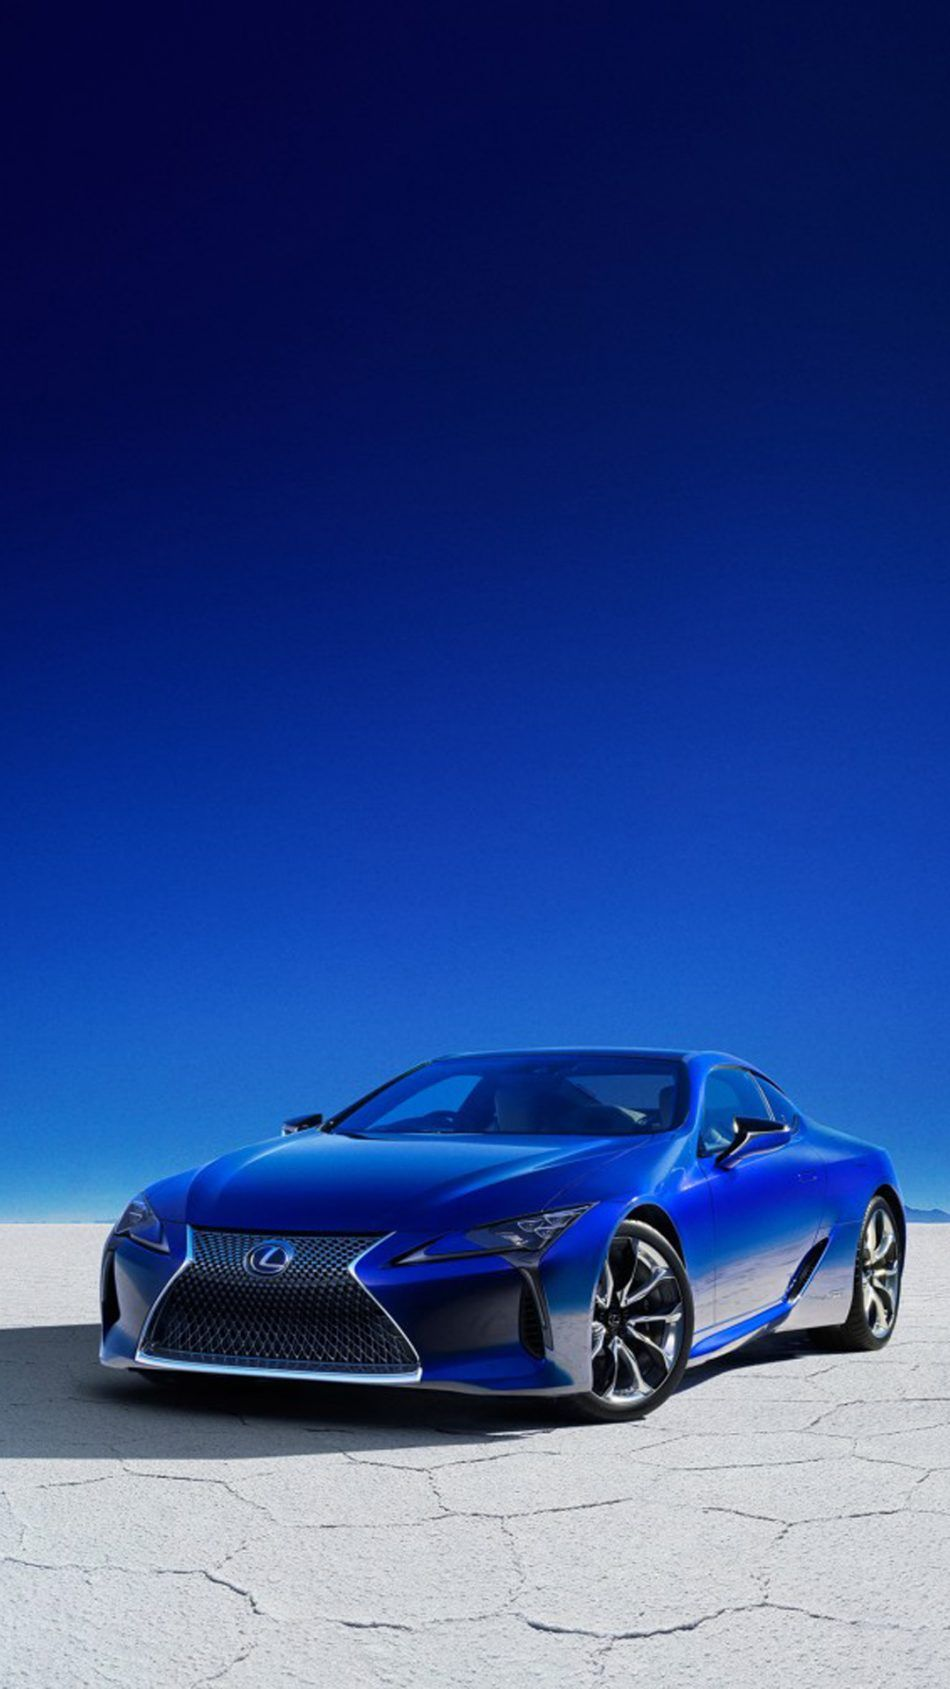 Lexus Lc 500h Structural Blue Edition 4k Ultra Hd Mobile Wallpaper Lexus Lc Lexus Super Cars